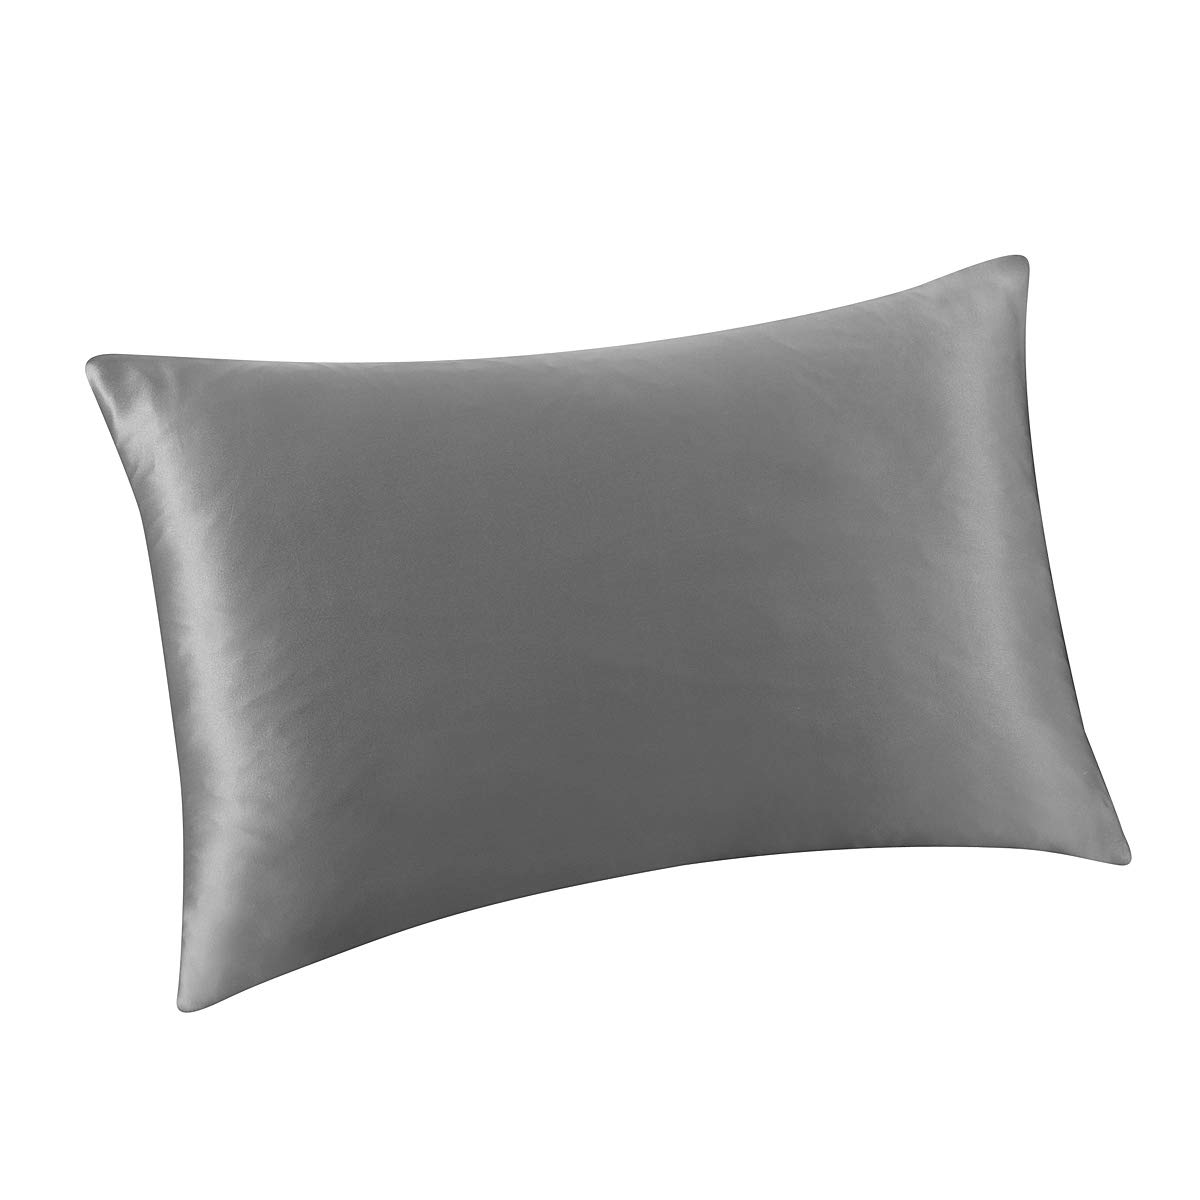 ALASKA BEAR Natural Silk Pillowcase for Hair and Skin 19 Momme 600 Thread Count 100 Percent Hypoallergenic Mulberry Silk Pillow Slip Queen Size with Hidden Zipper (1, Iron Grey)